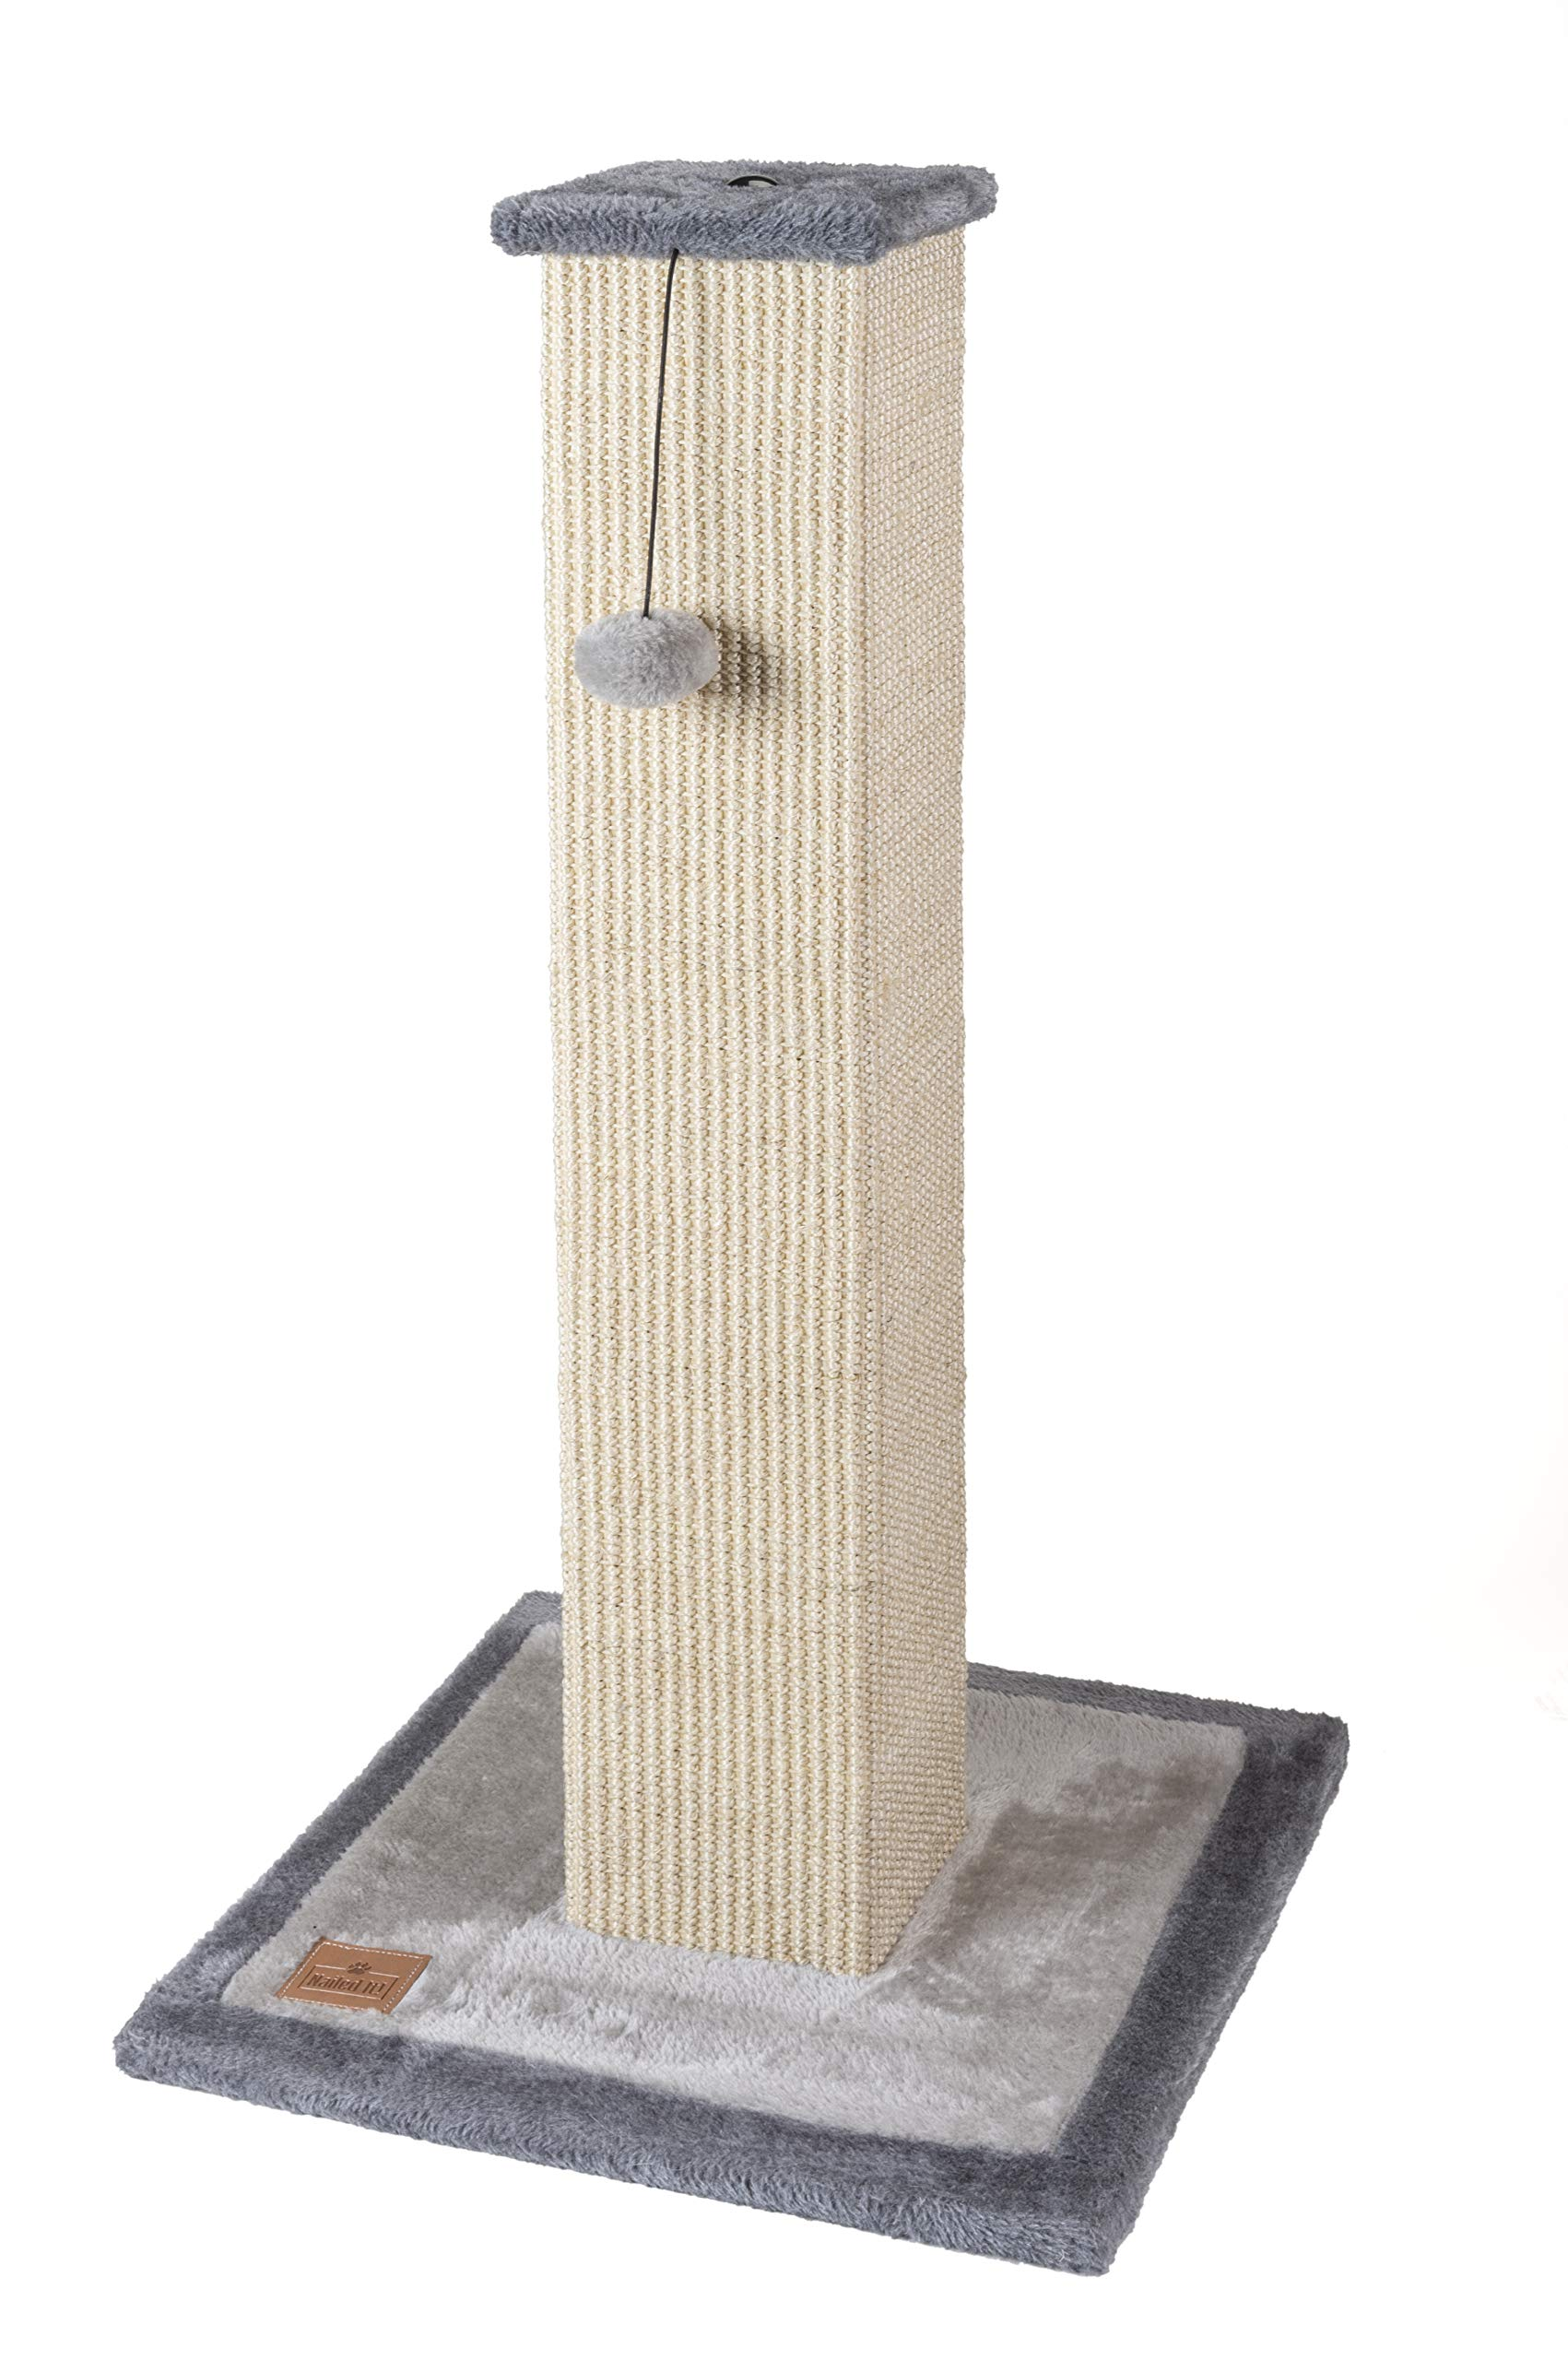 Nailed It! Premium Natural Woven Sisal Cat Scratching Post and Perch Cat Scratcher Cat Tower (Grey) by Nailed It!